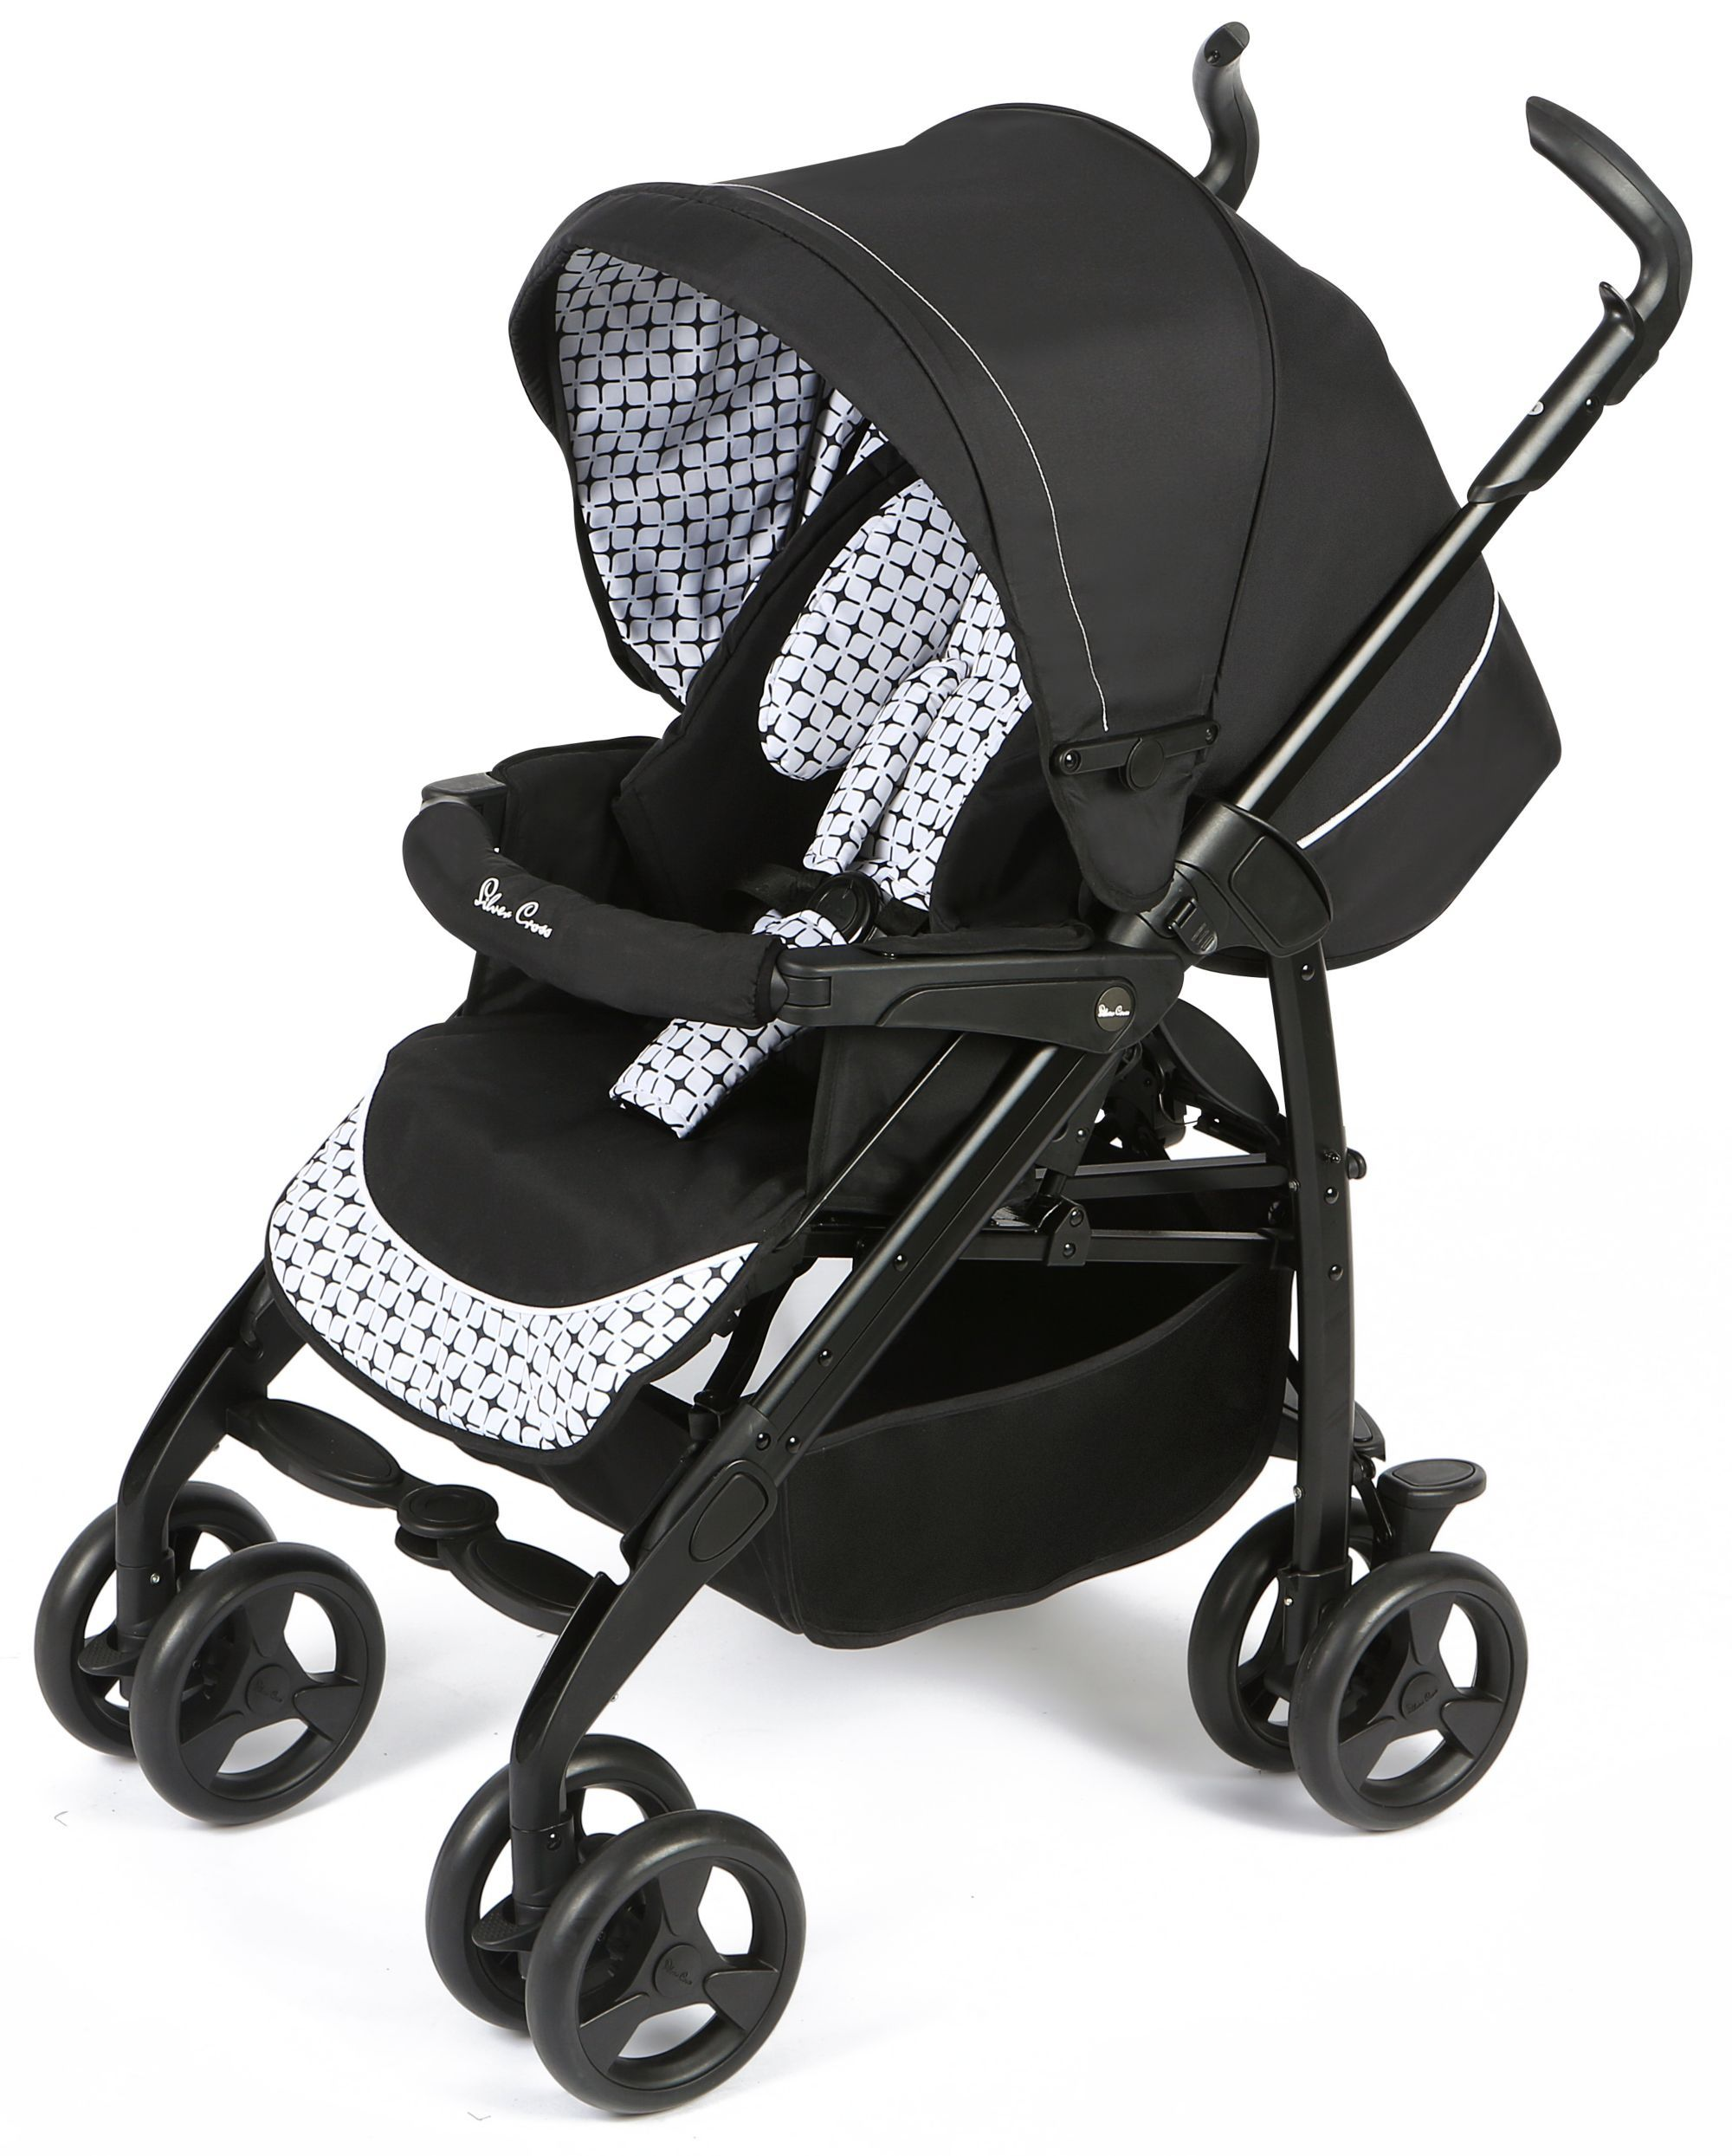 Oyster Double Pram Mothercare Silver Cross 3d Pram And Pushchair Travel System